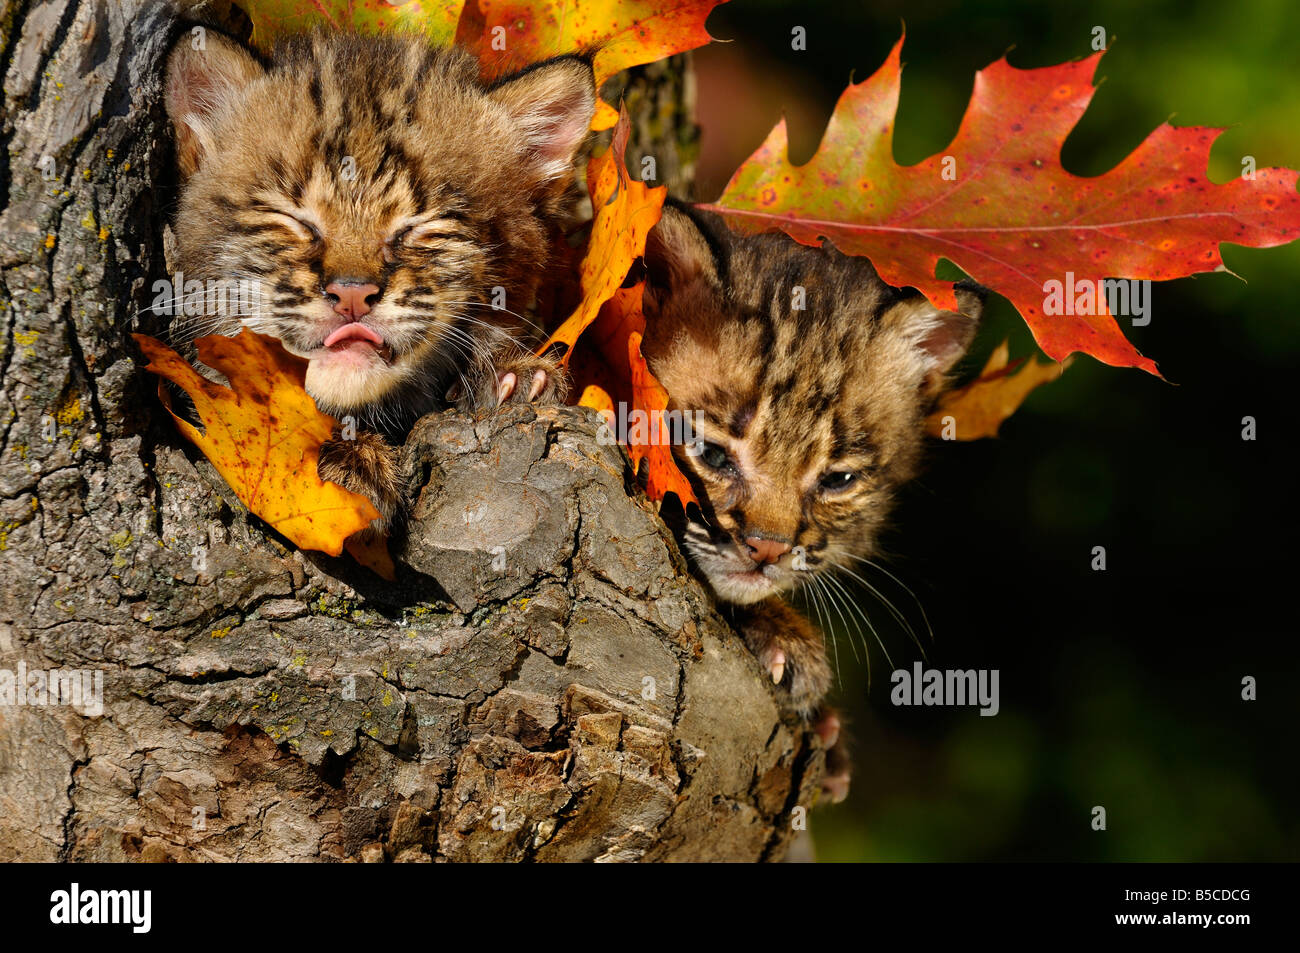 Bobcat kitten with eyes closed licking nose in a tree hollow den with Fall colored oak leaves Lynx Rufus Minnesota - Stock Image